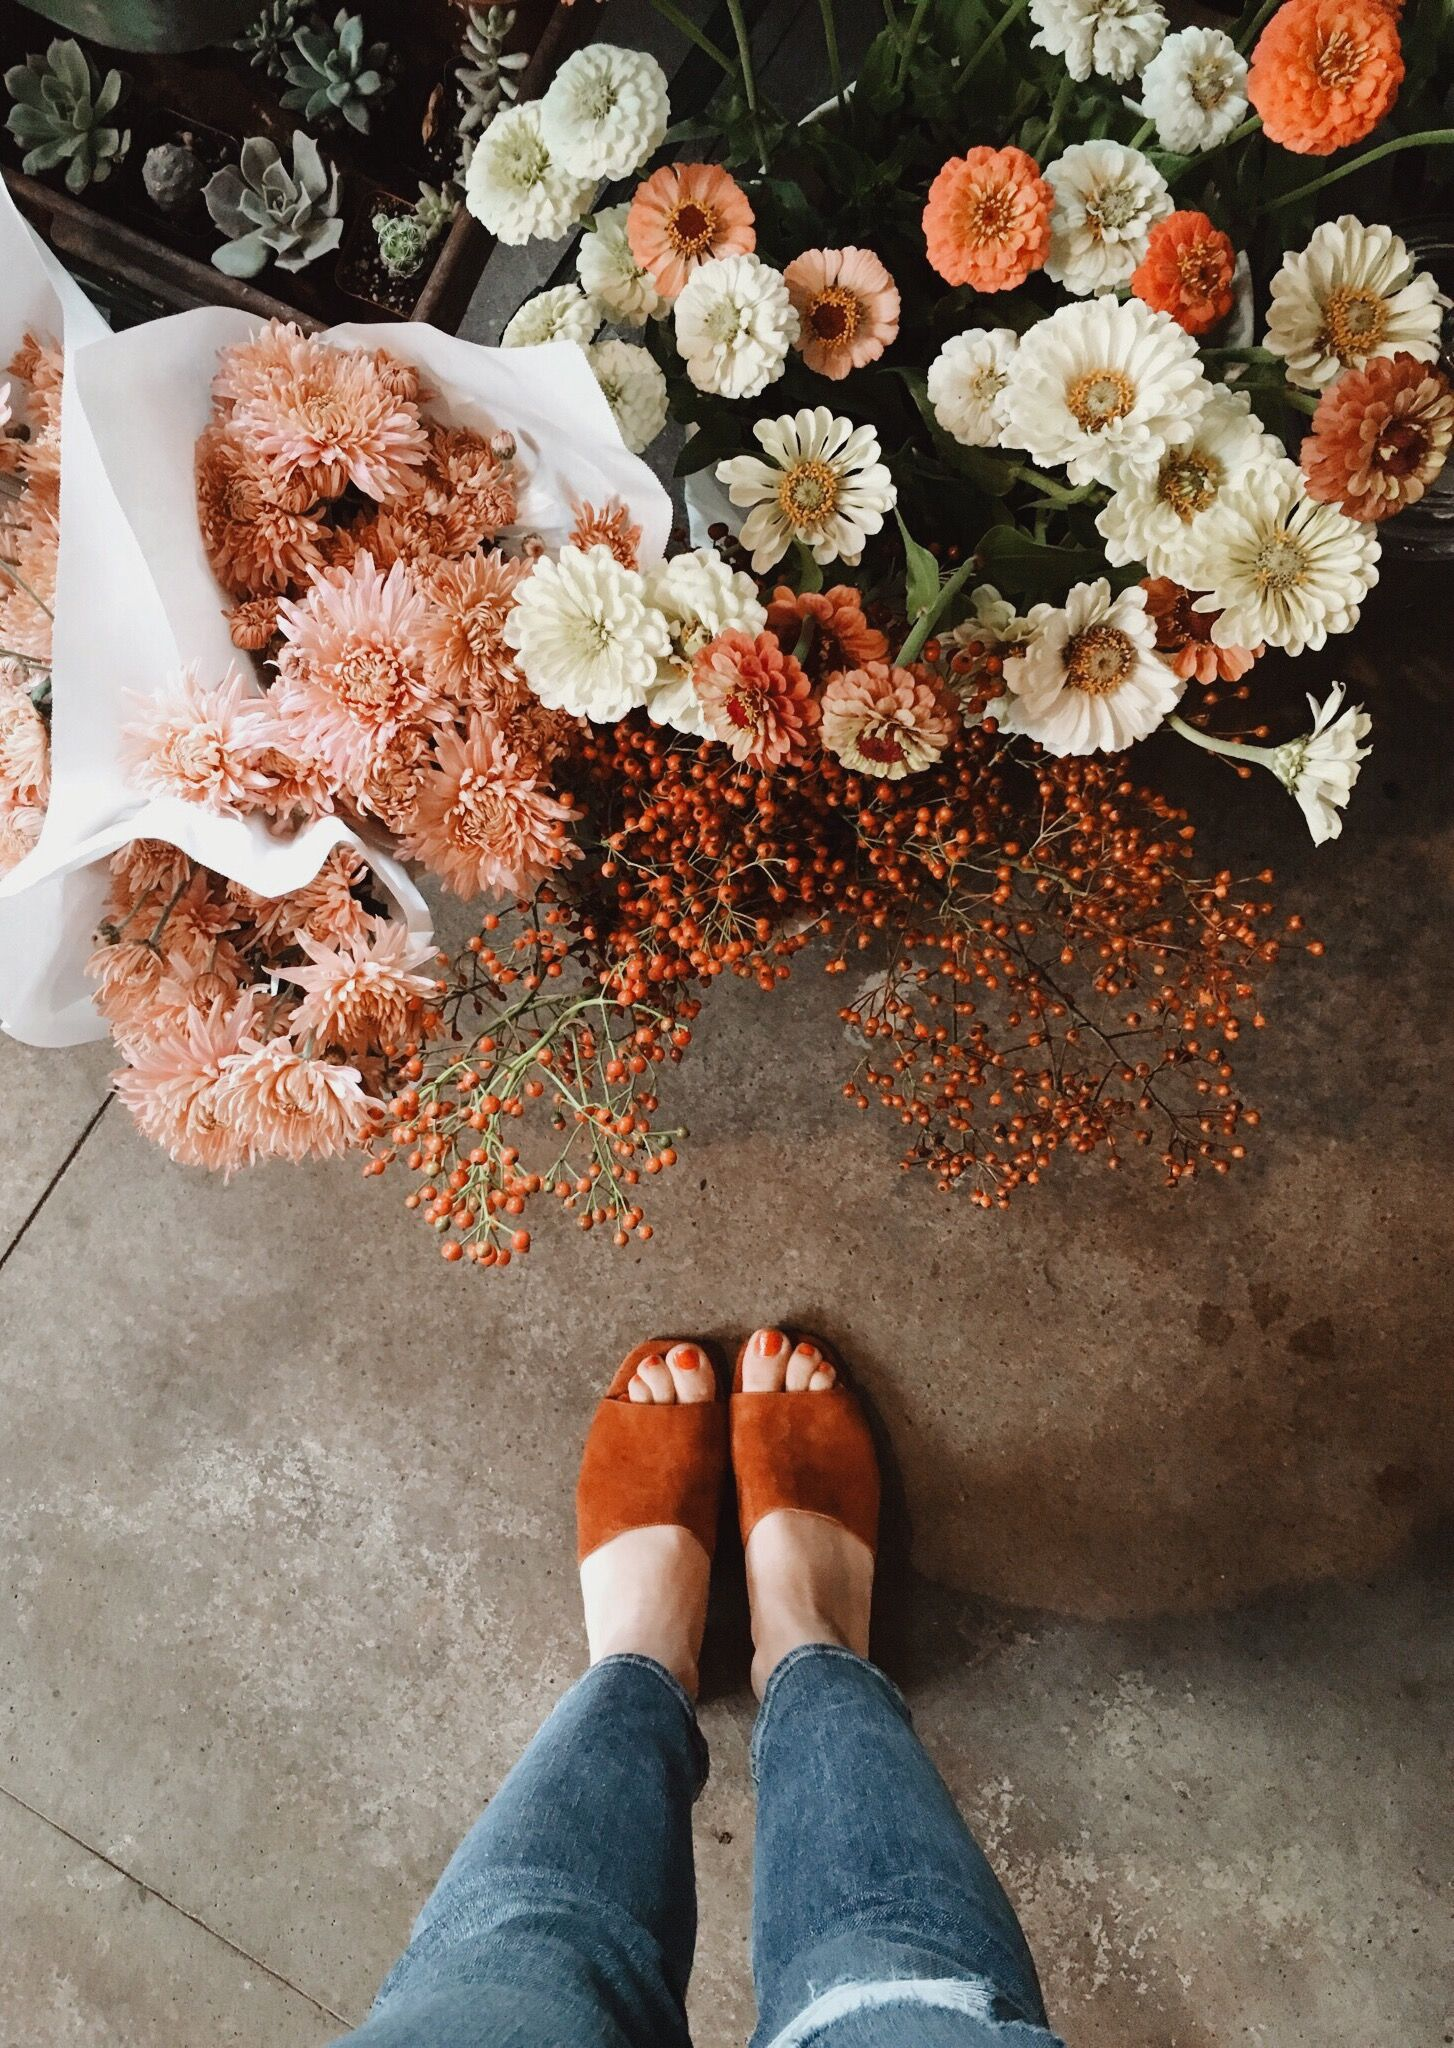 Love This Burnt Orange Hue In The Shoes And Flowers